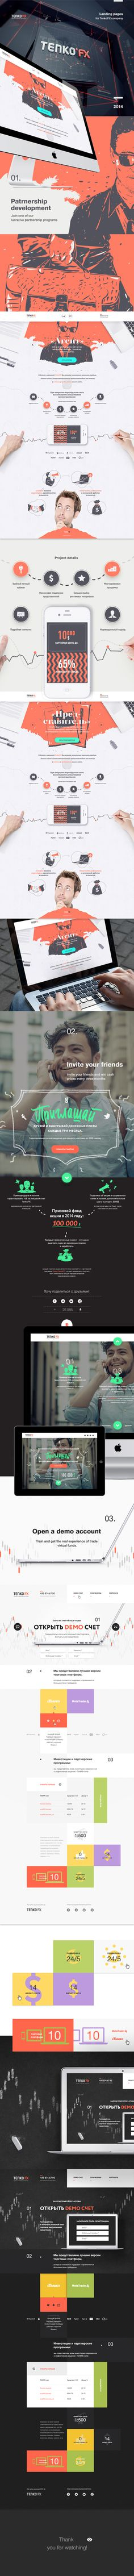 Tenko FX. Landing pages